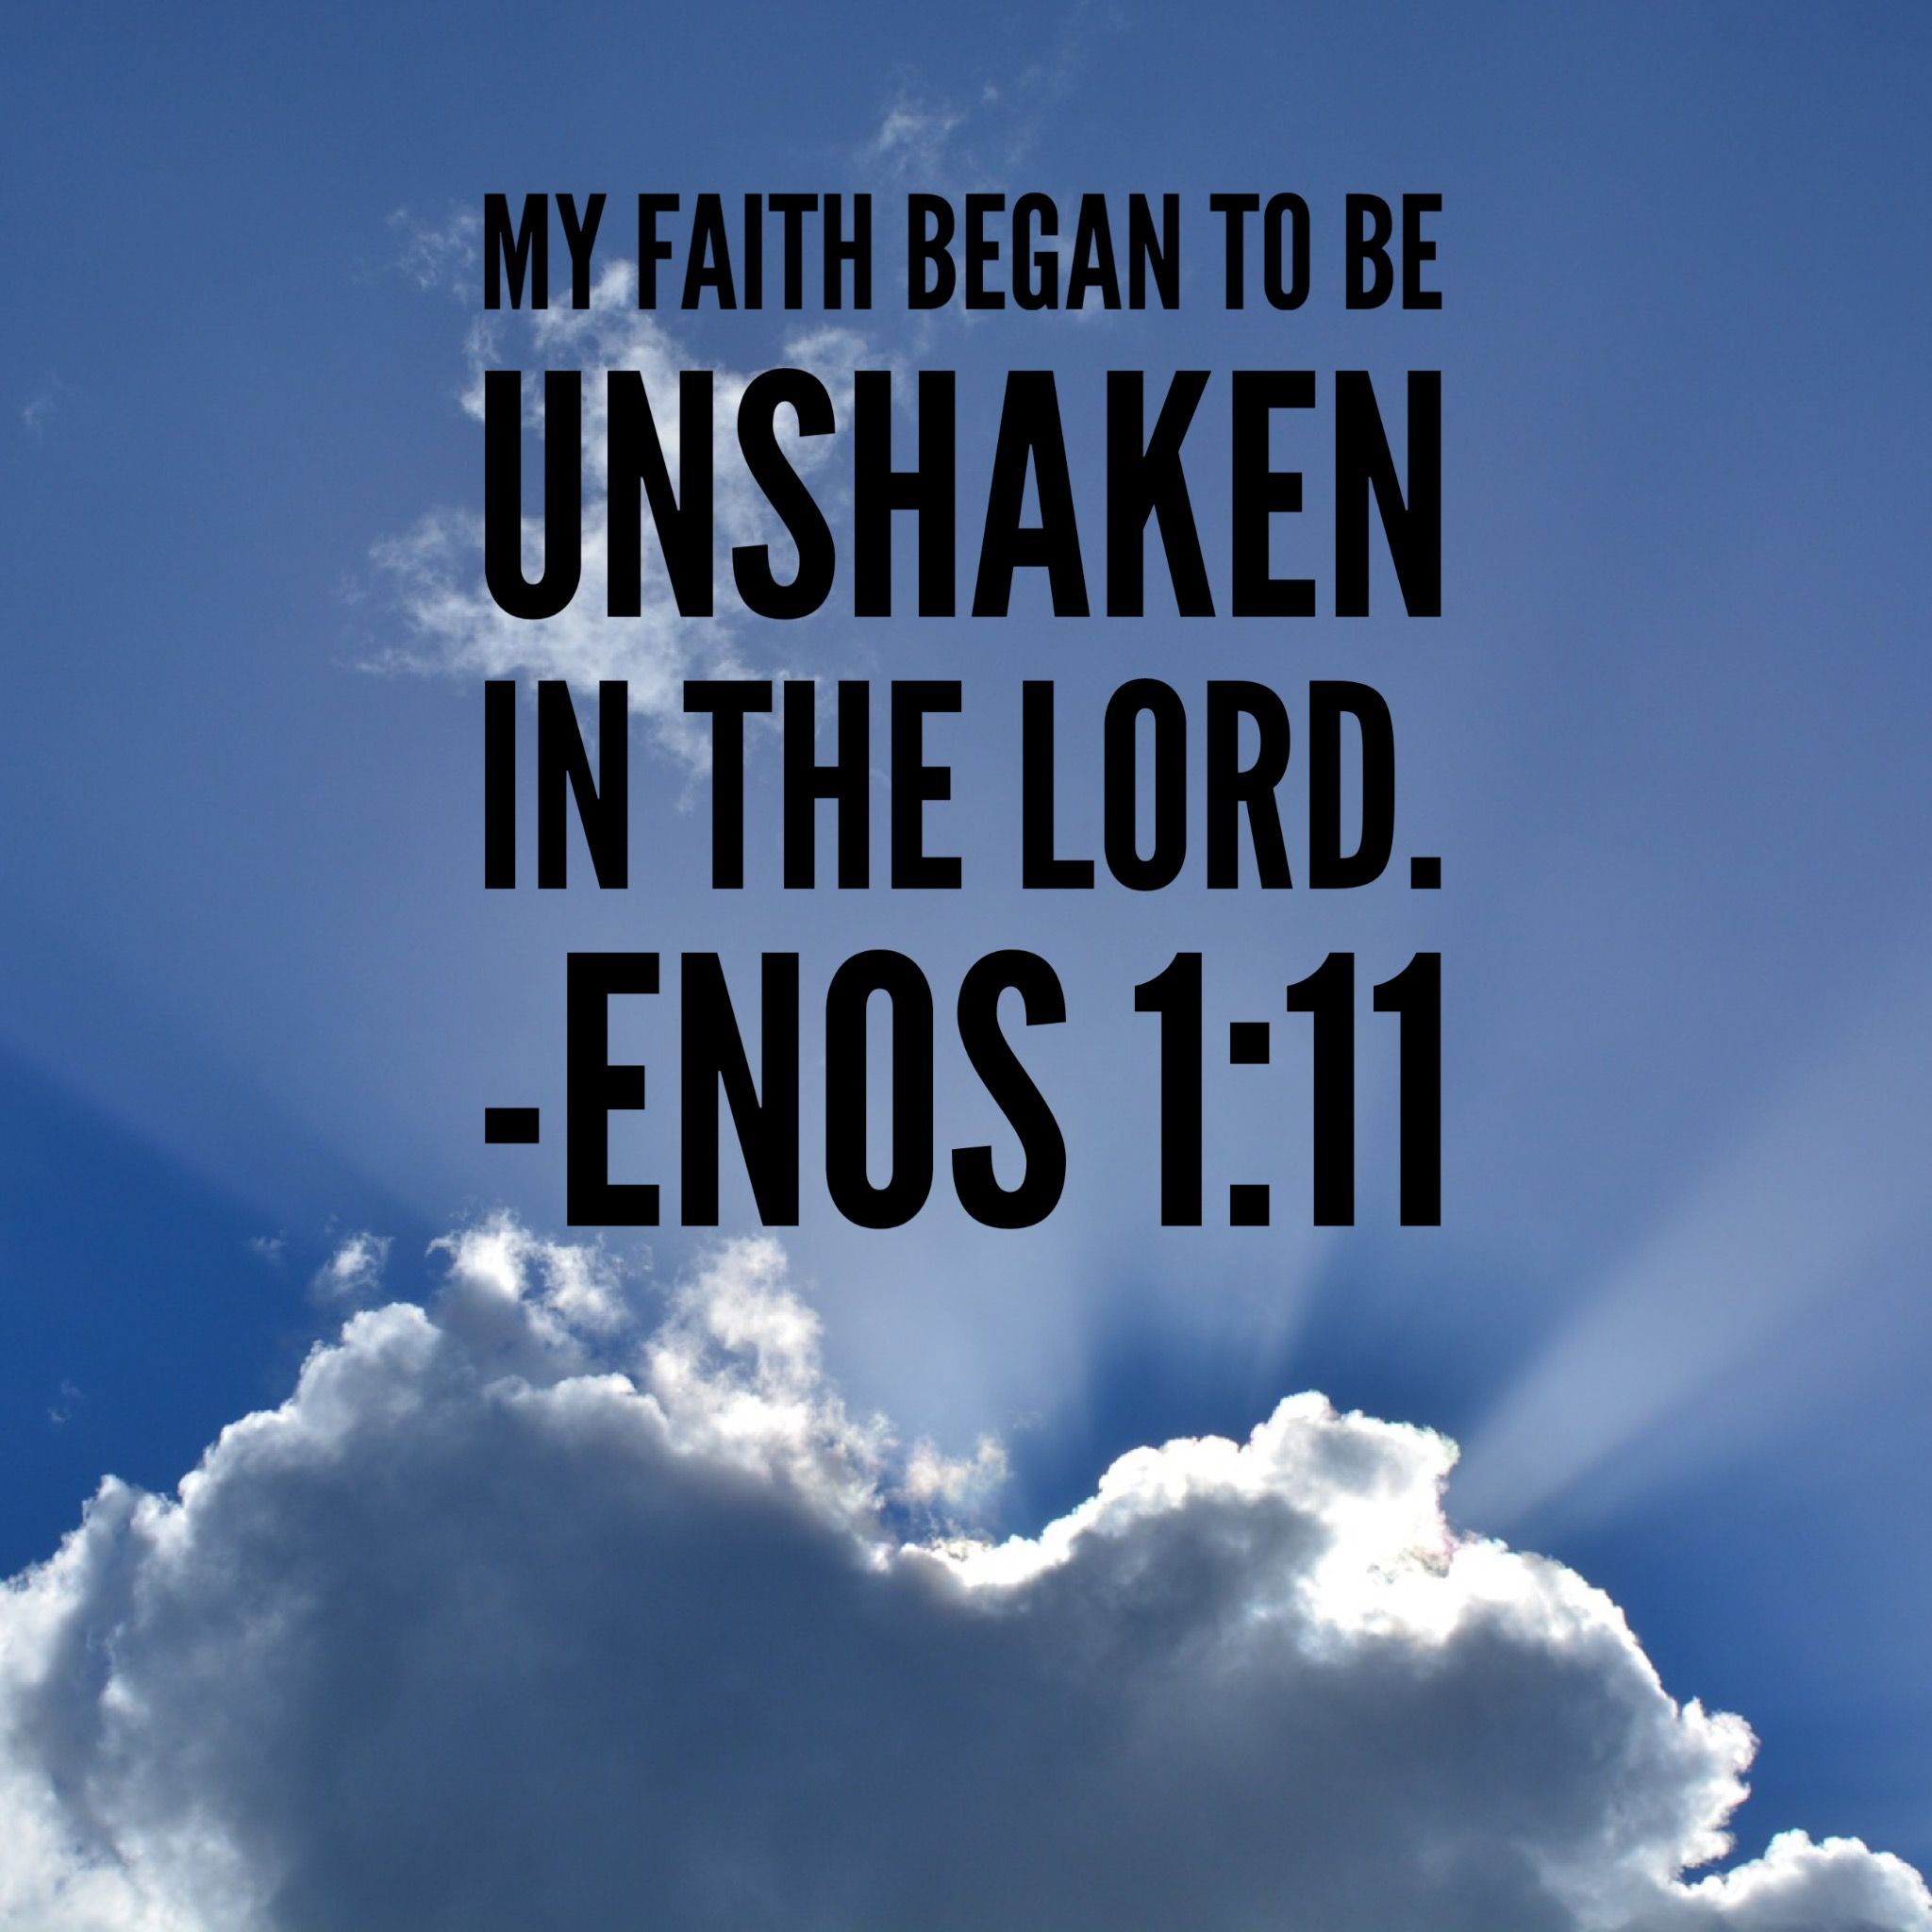 #ldsquotes #bookofmormon my faith began to be unshaken in the Lord. Enos 1:11